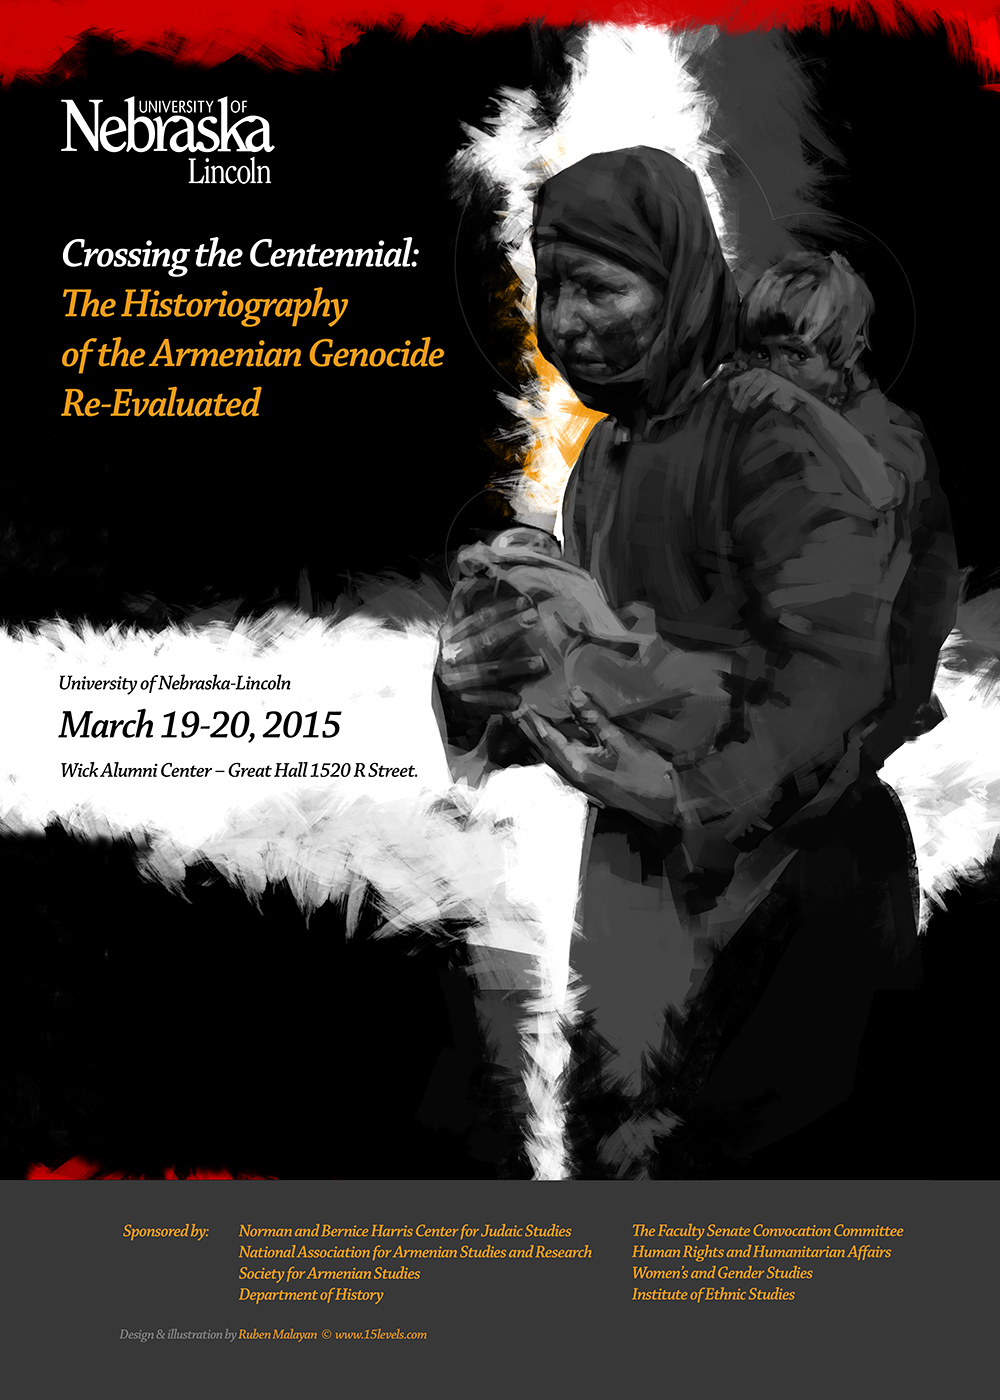 Conference examining Armenian genocide is March 19-20